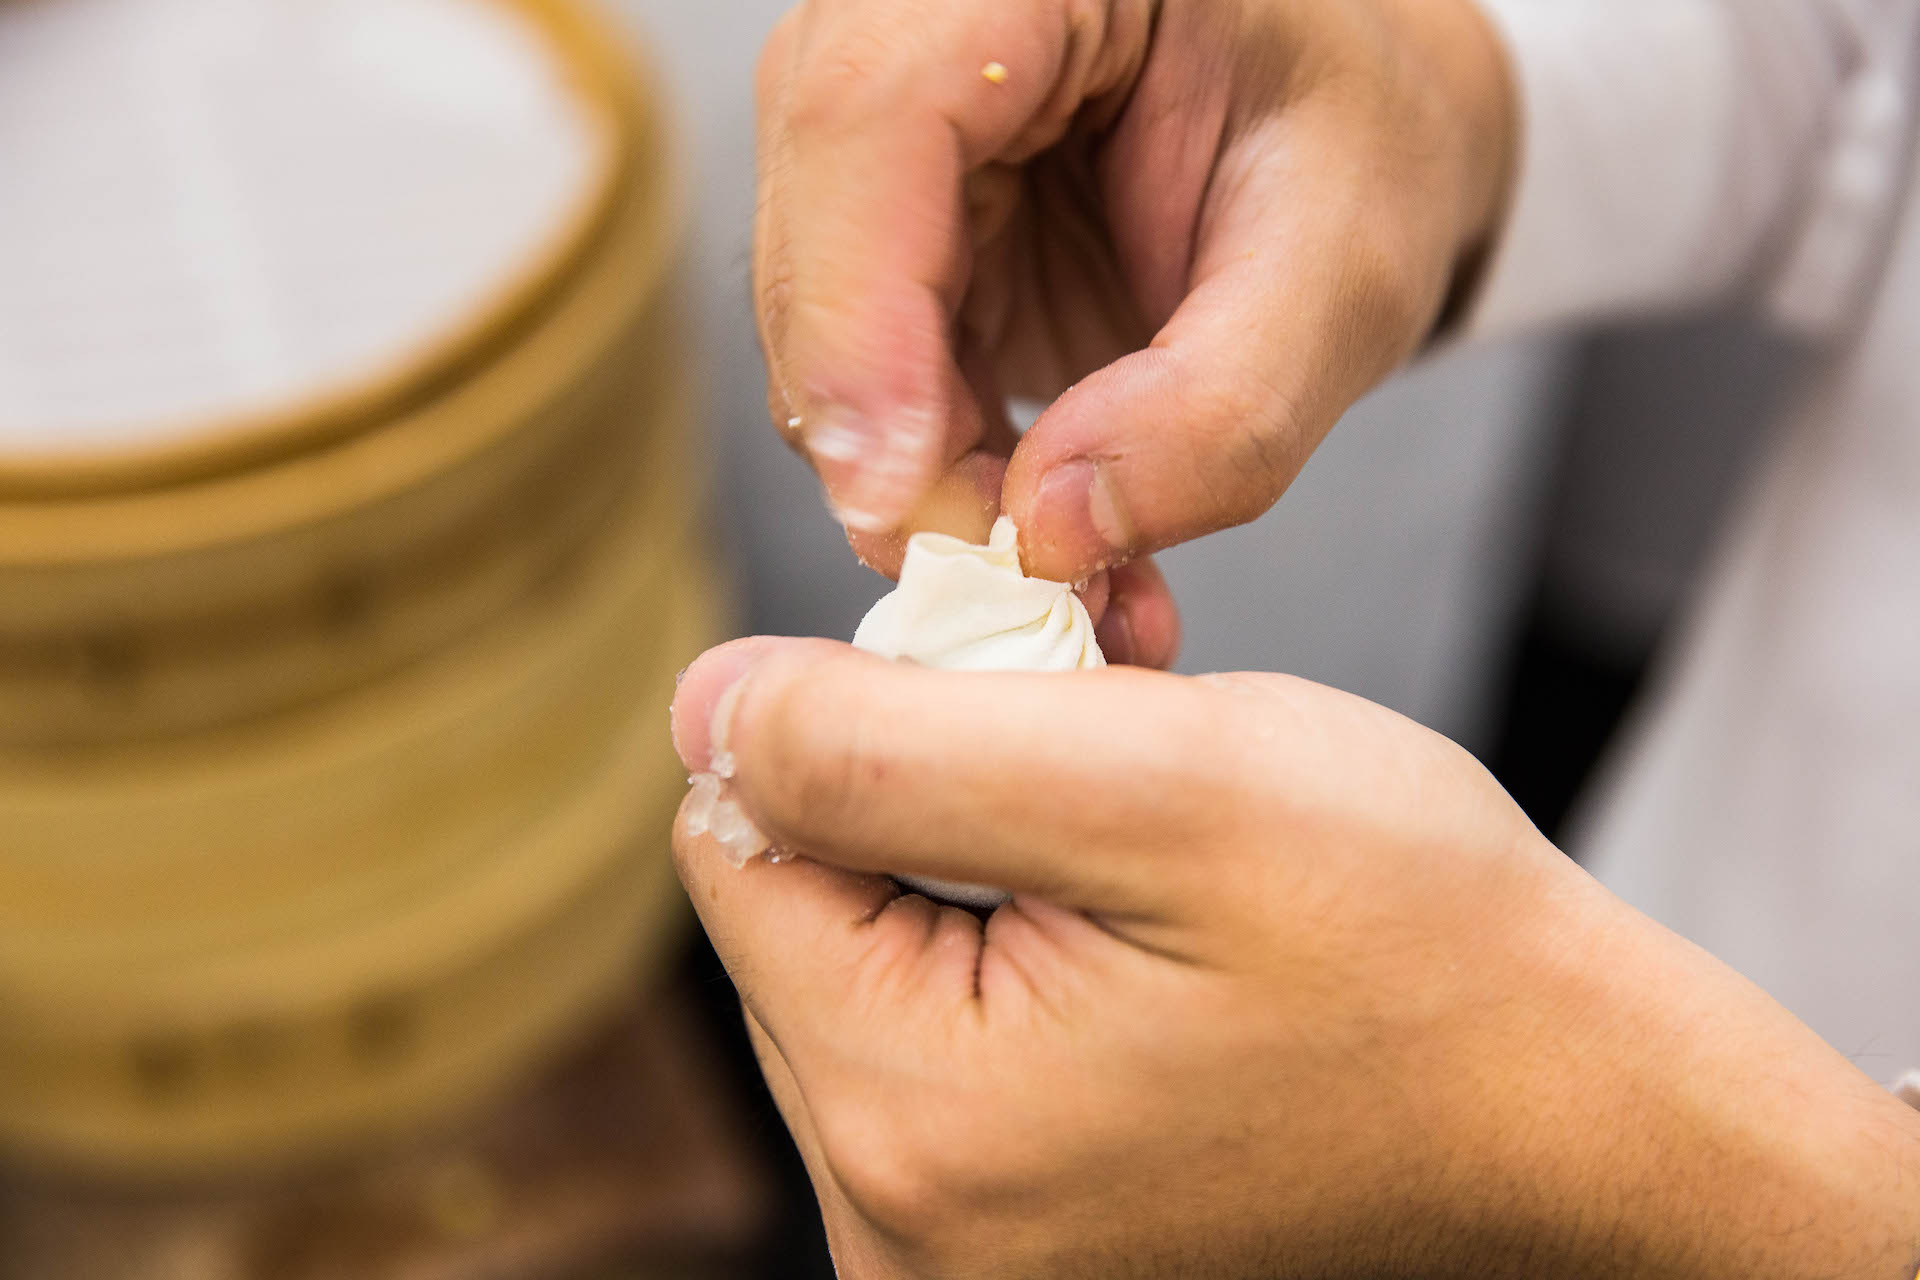 A master dumpling chef making a perfect 18-fold Xiao Long Bao (soup dumpling) at the original Din Tai Fung.